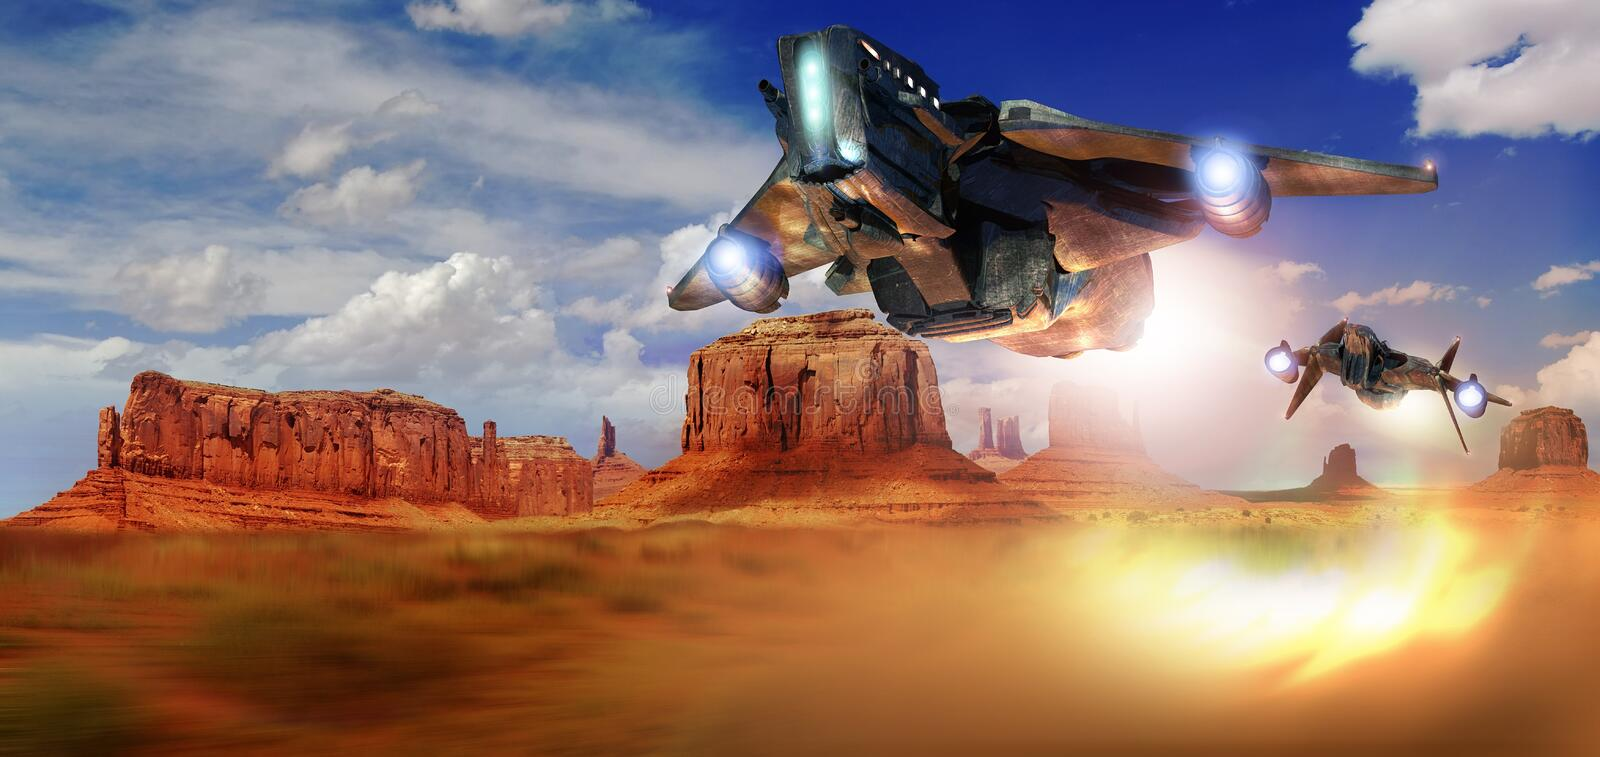 Space fighters pursuit. Twofuturistic space fighters in a battle over Monument Valley royalty free illustration